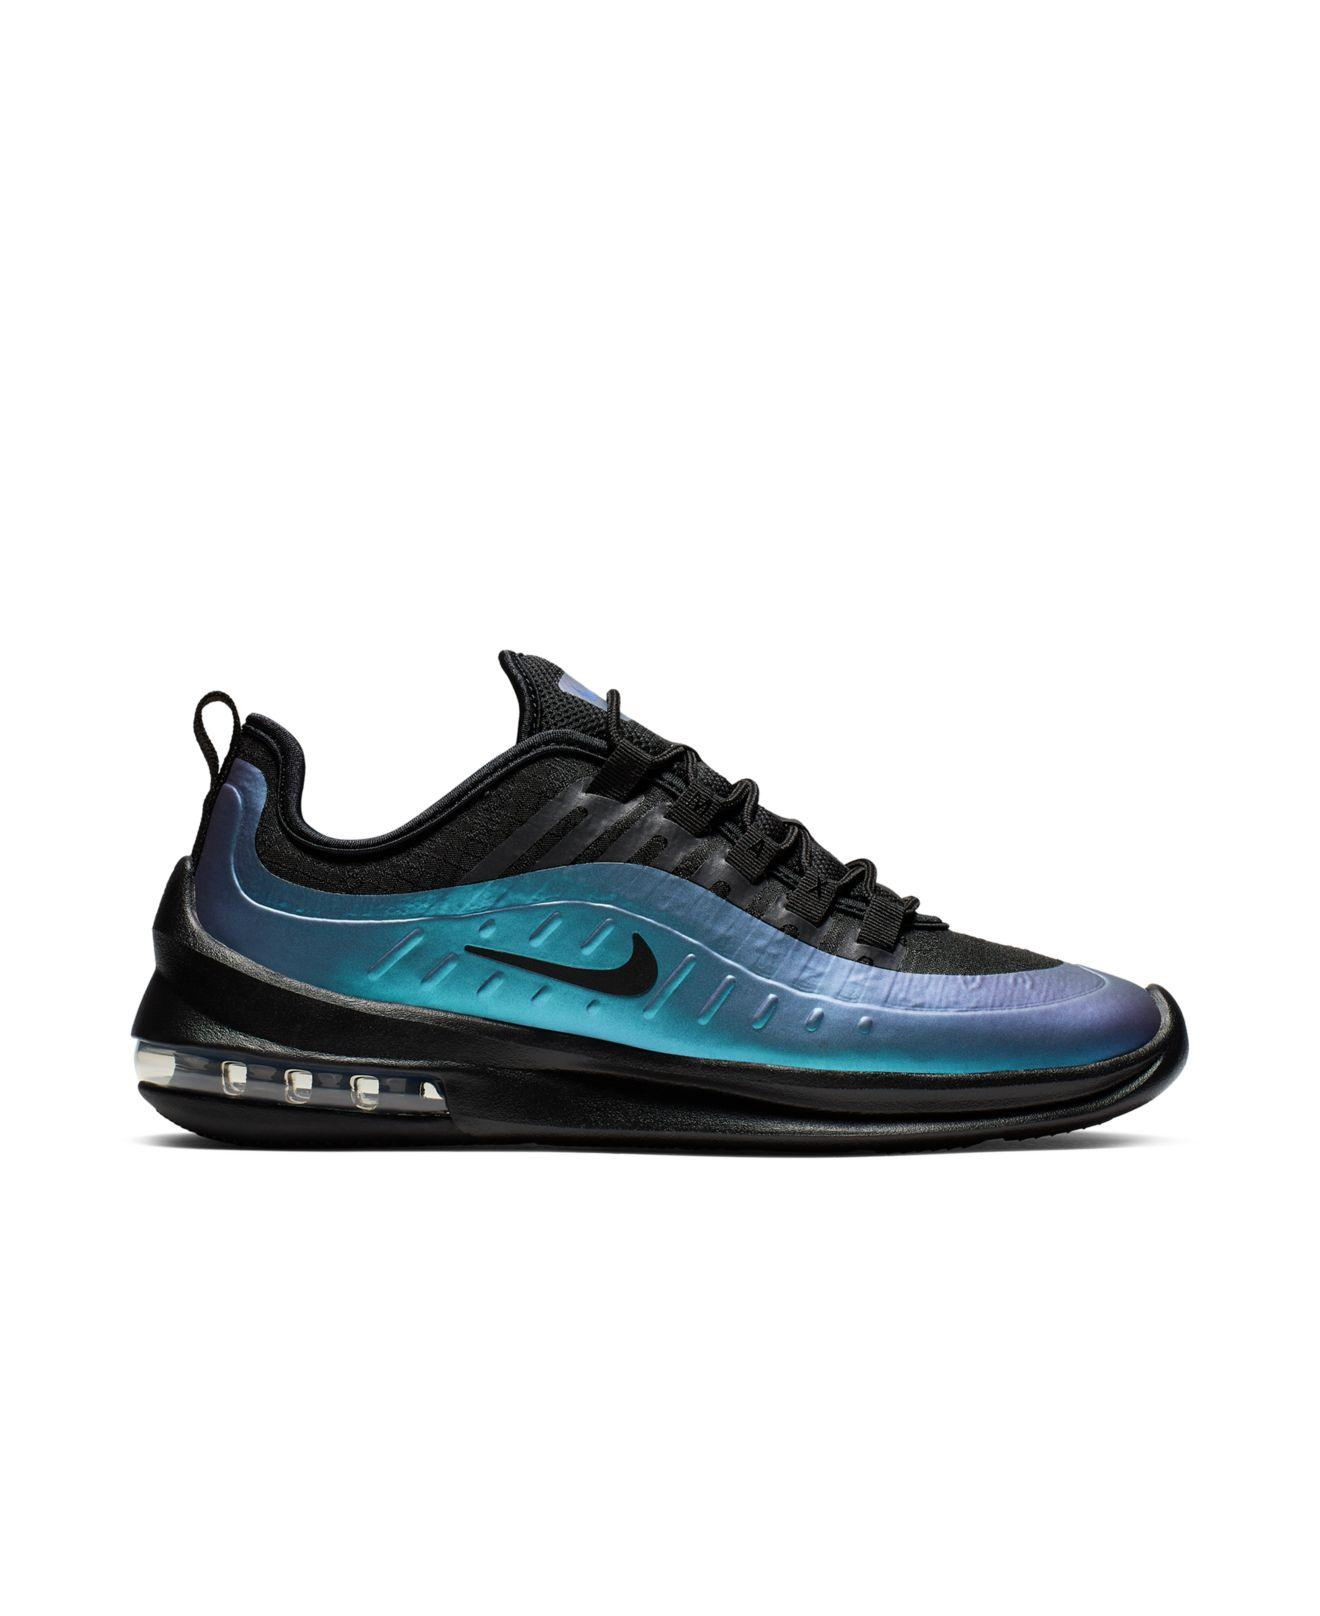 huge selection of c5a35 27fe1 Nike Air Max Axis Premium Casual Sneakers From Finish Line in Black for Men  - Lyst